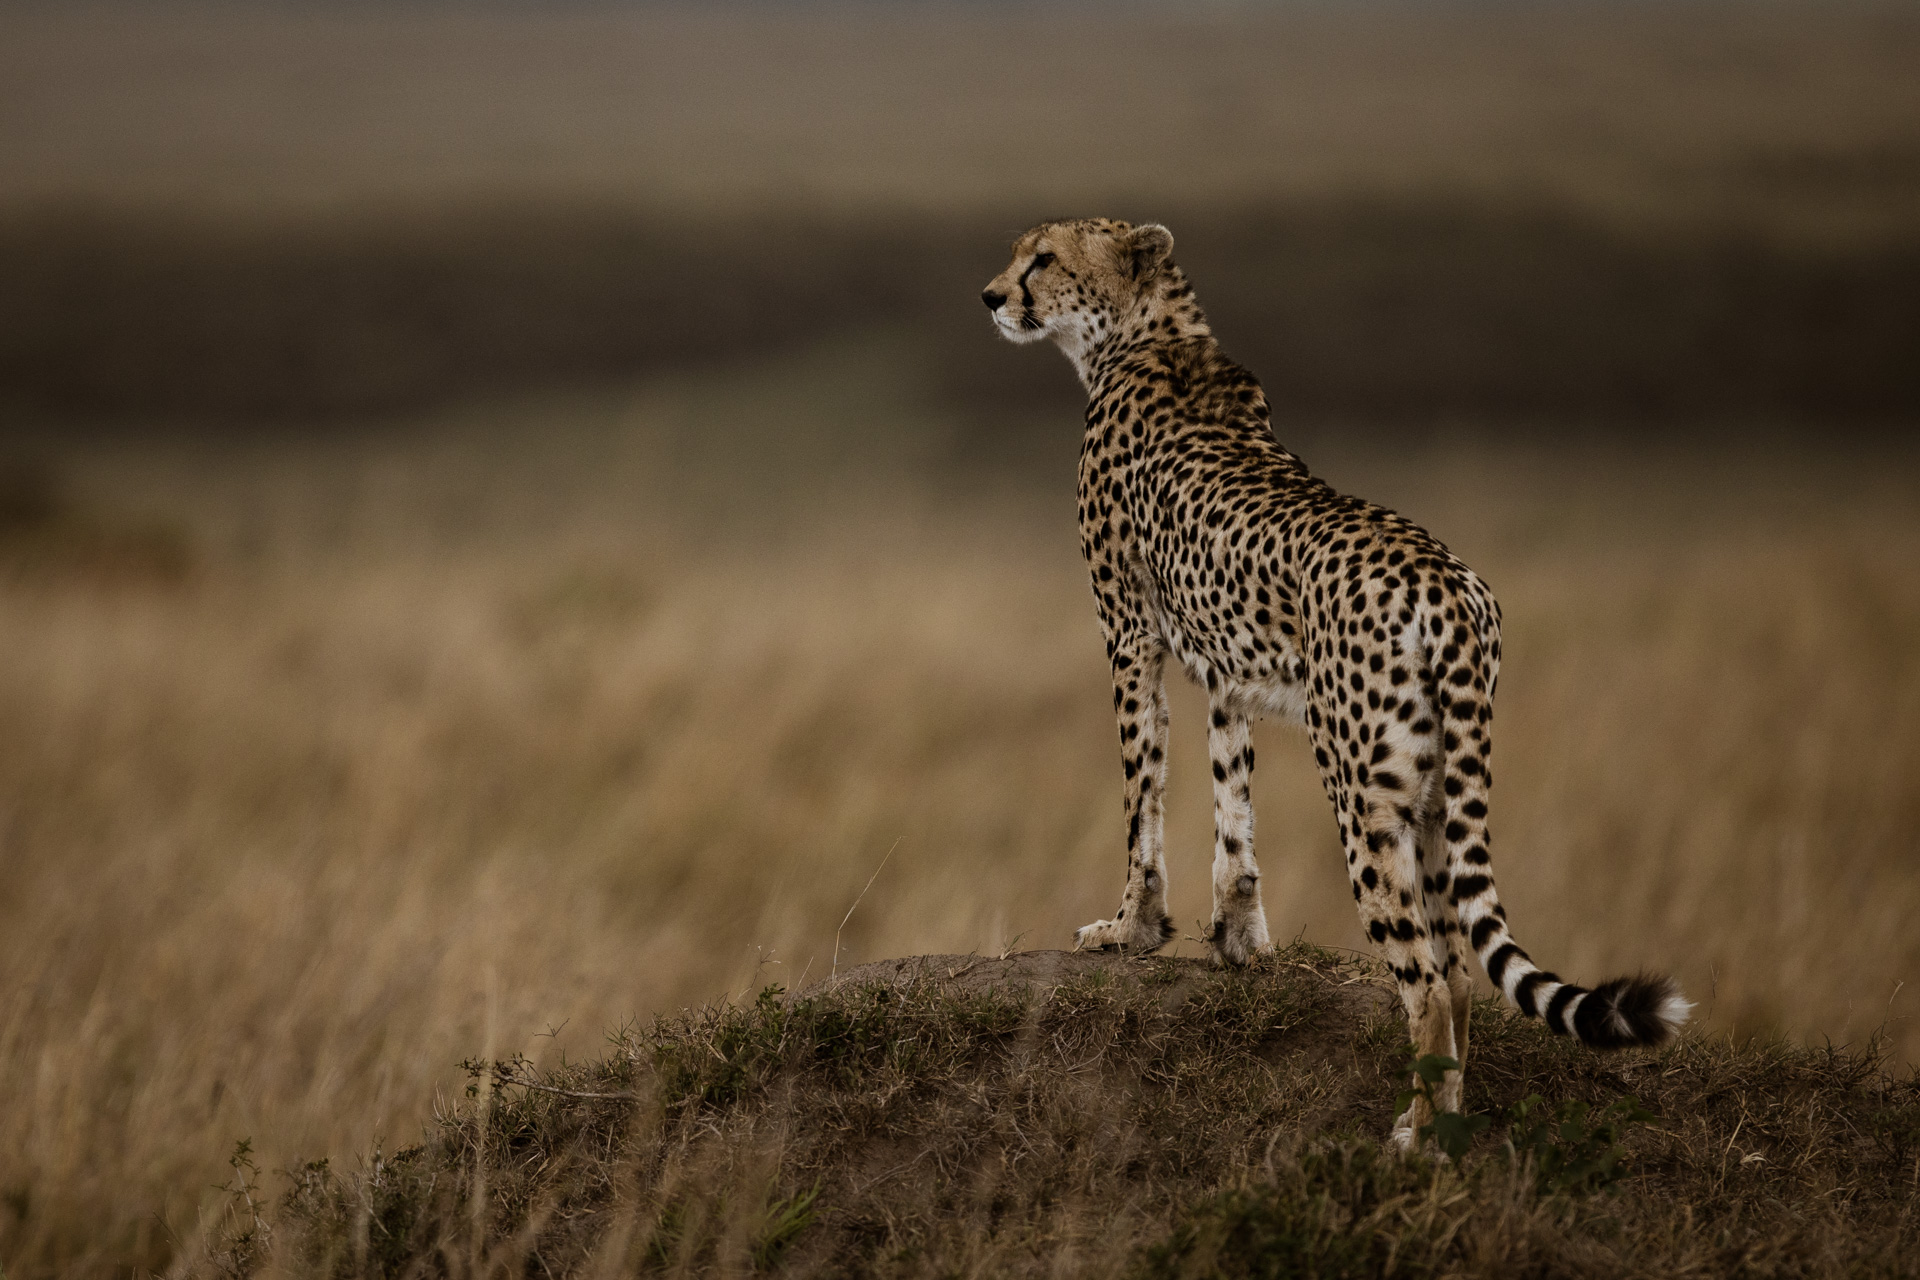 Cheetah standing on mound